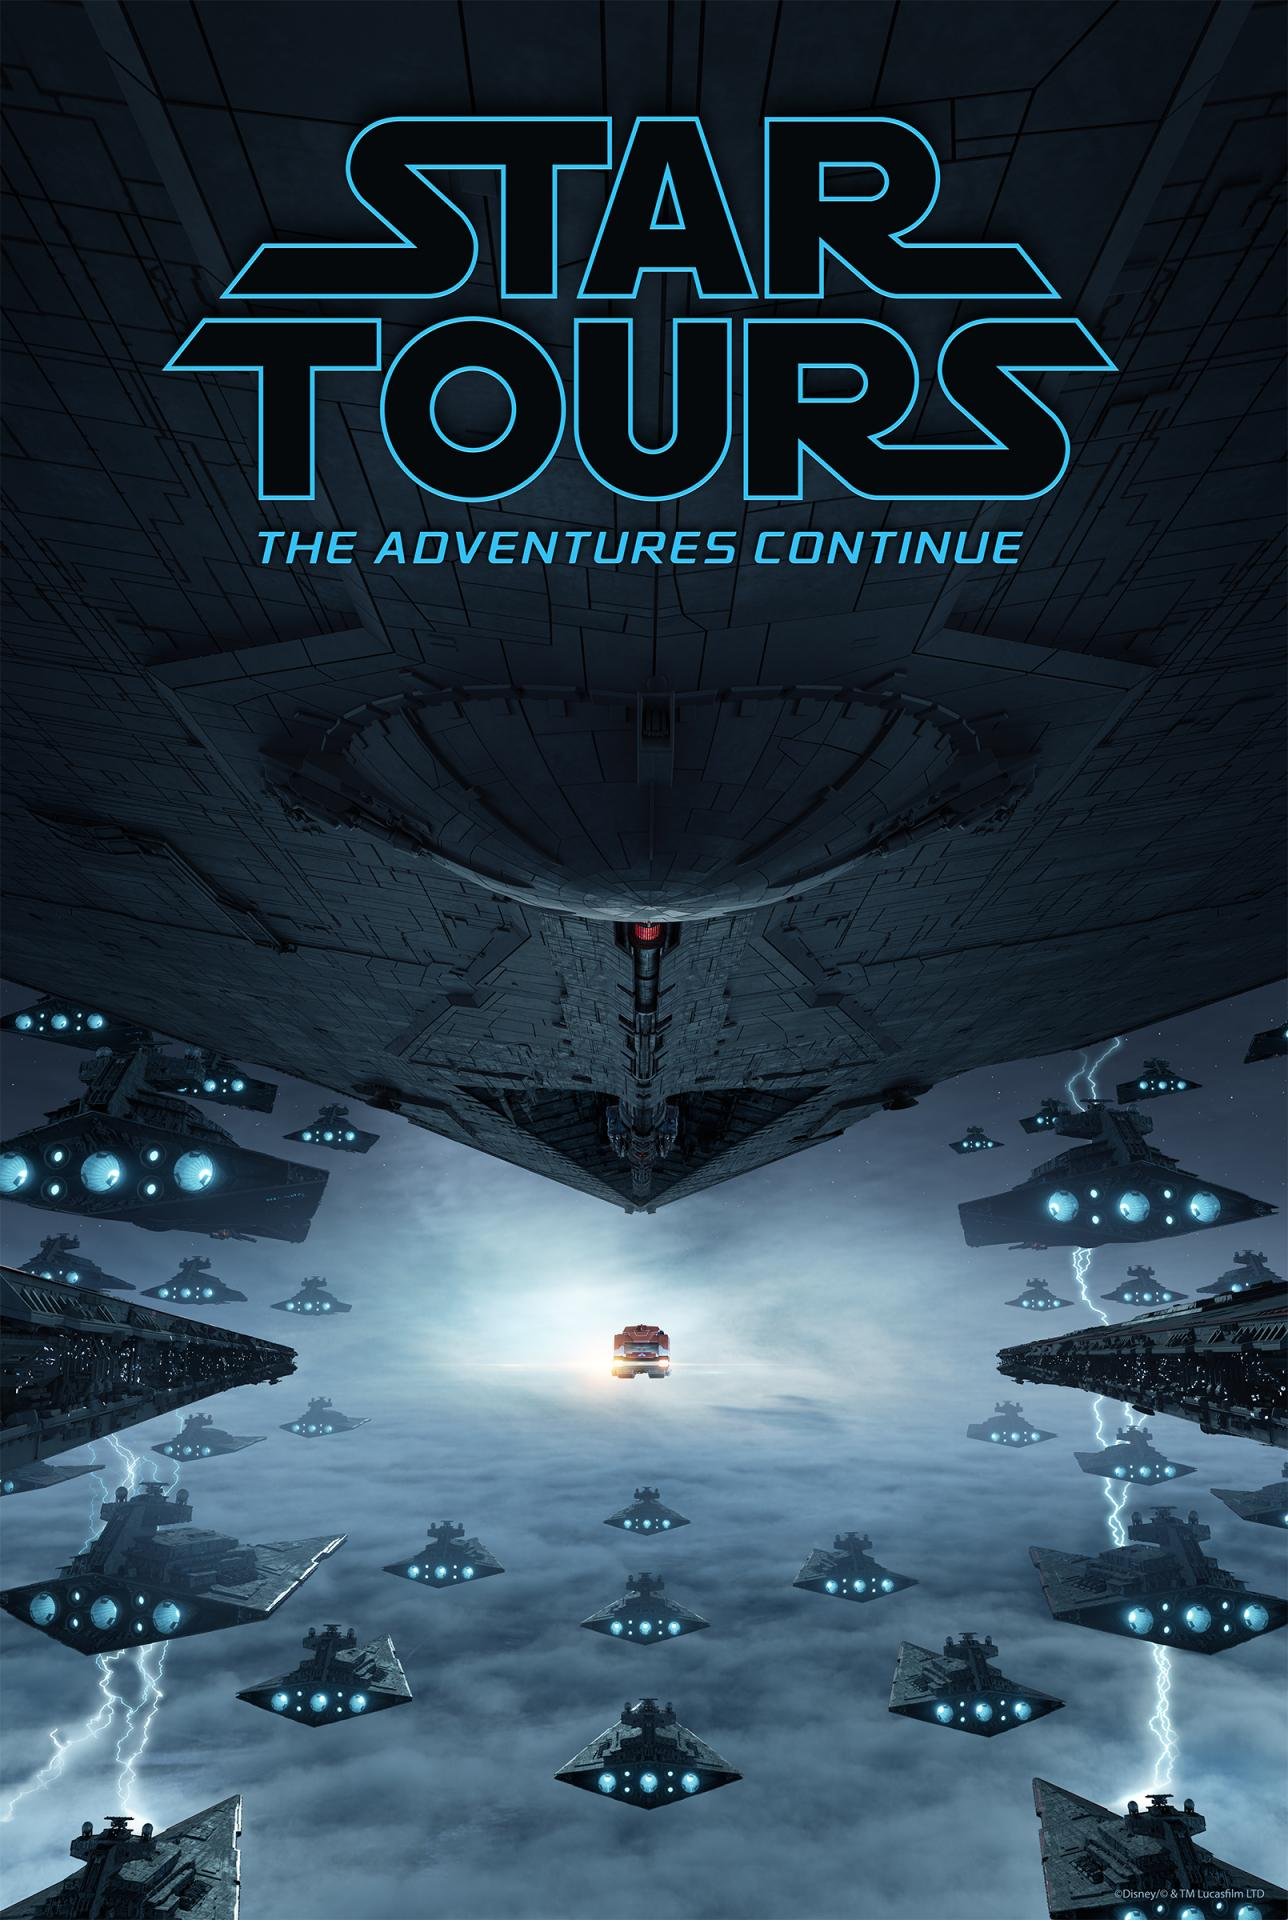 Poster Star Tours l'aventure continue Disneyland Paris